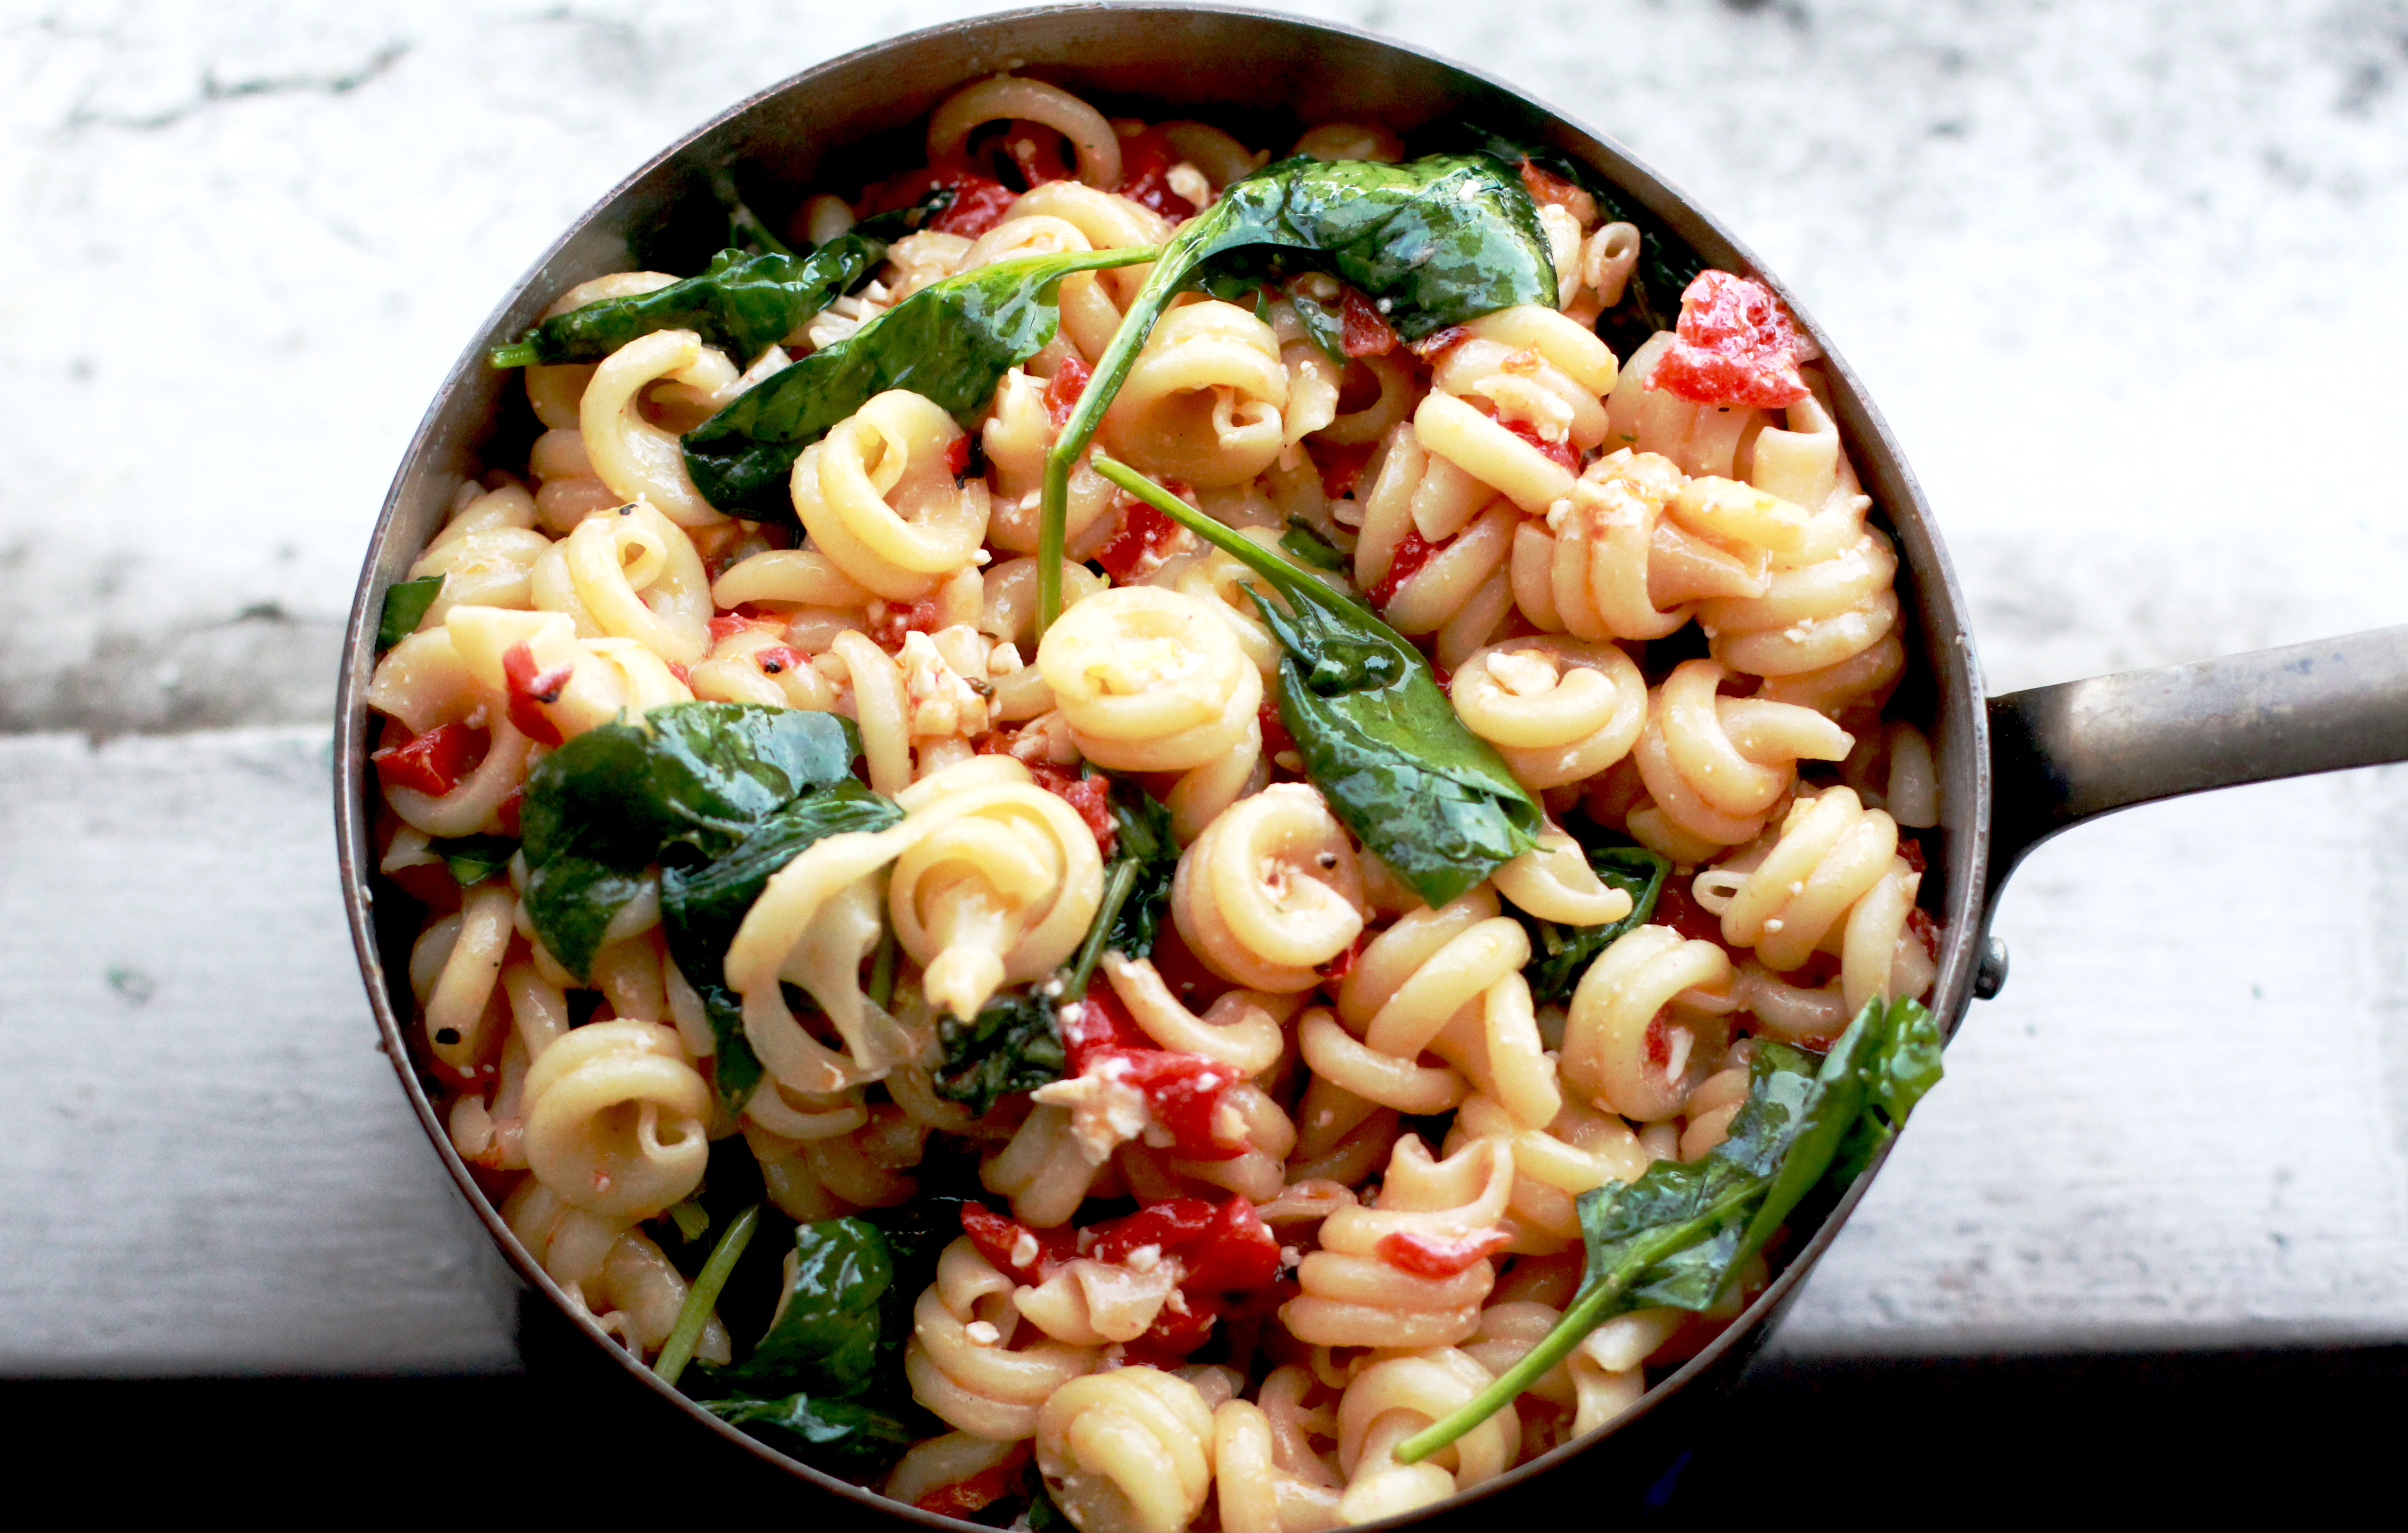 Pasta with Roasted Red Pepper, Spinach, Feta, and Sun Dried Tomatoes